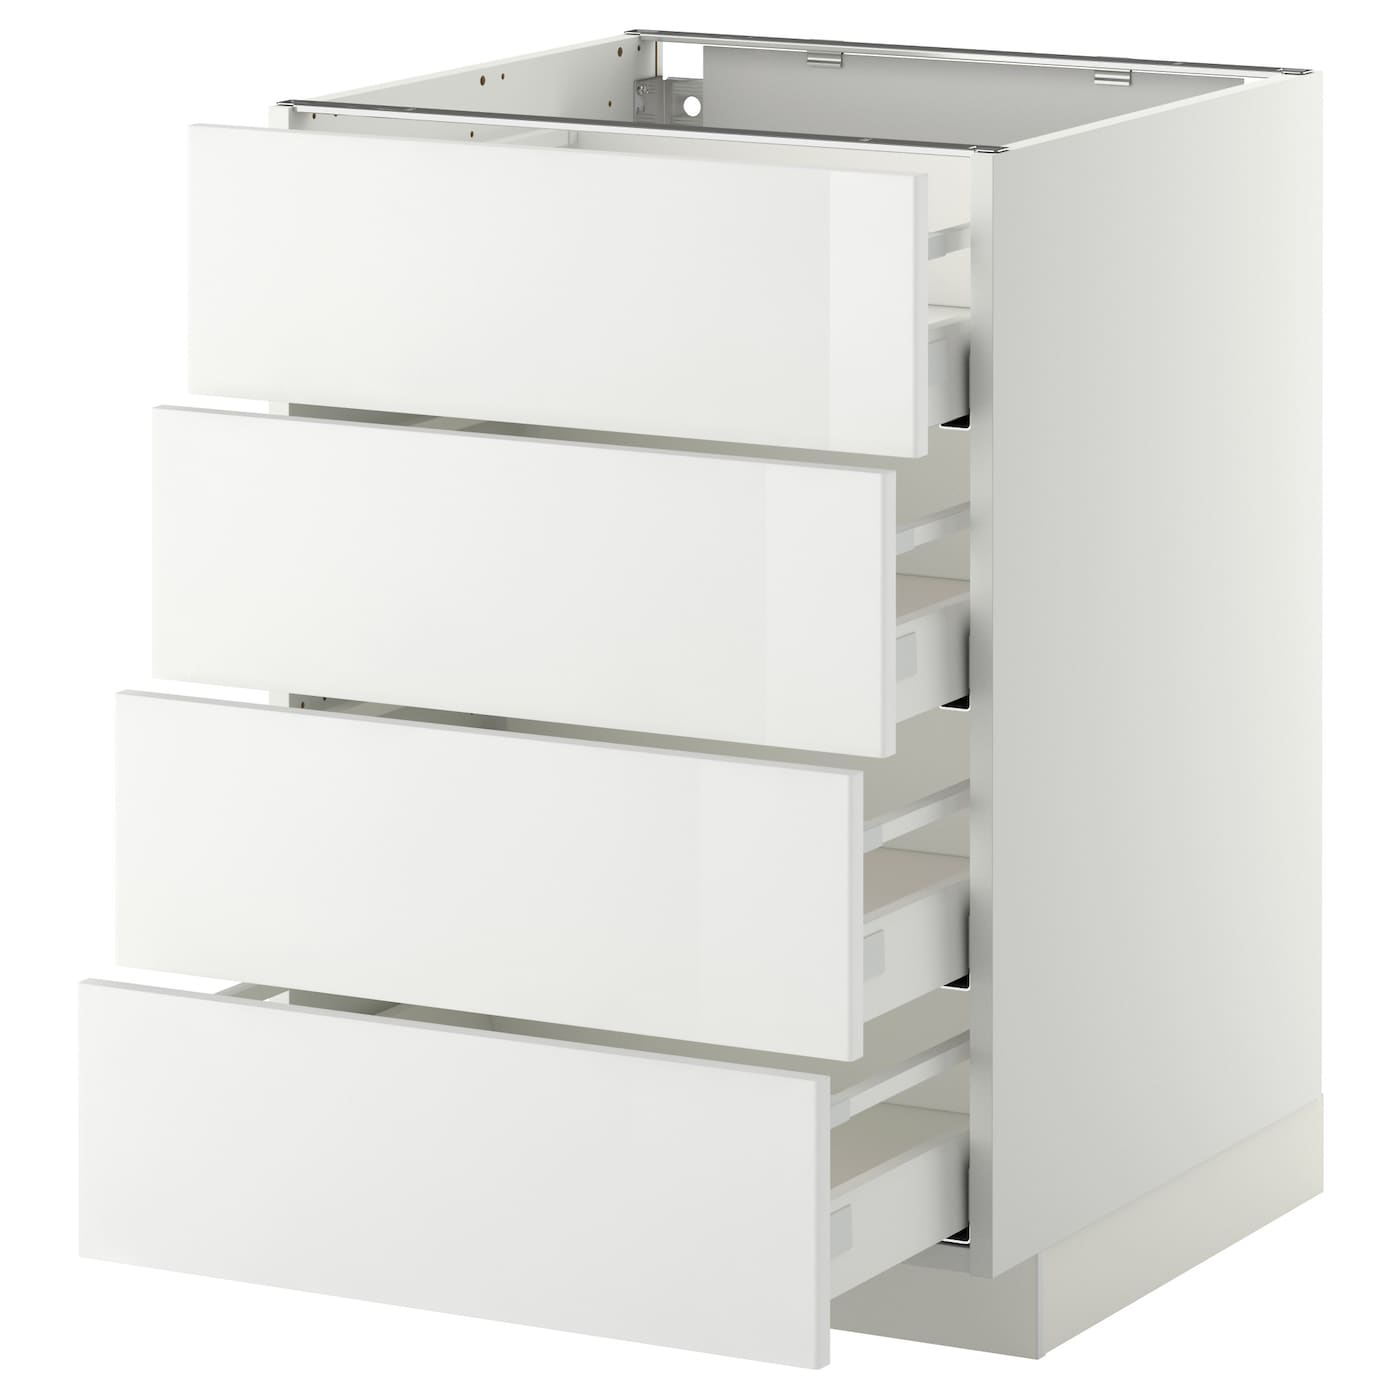 metod maximera base cab 4 frnts 4 drawers white ringhult white 60x60 cm ikea. Black Bedroom Furniture Sets. Home Design Ideas